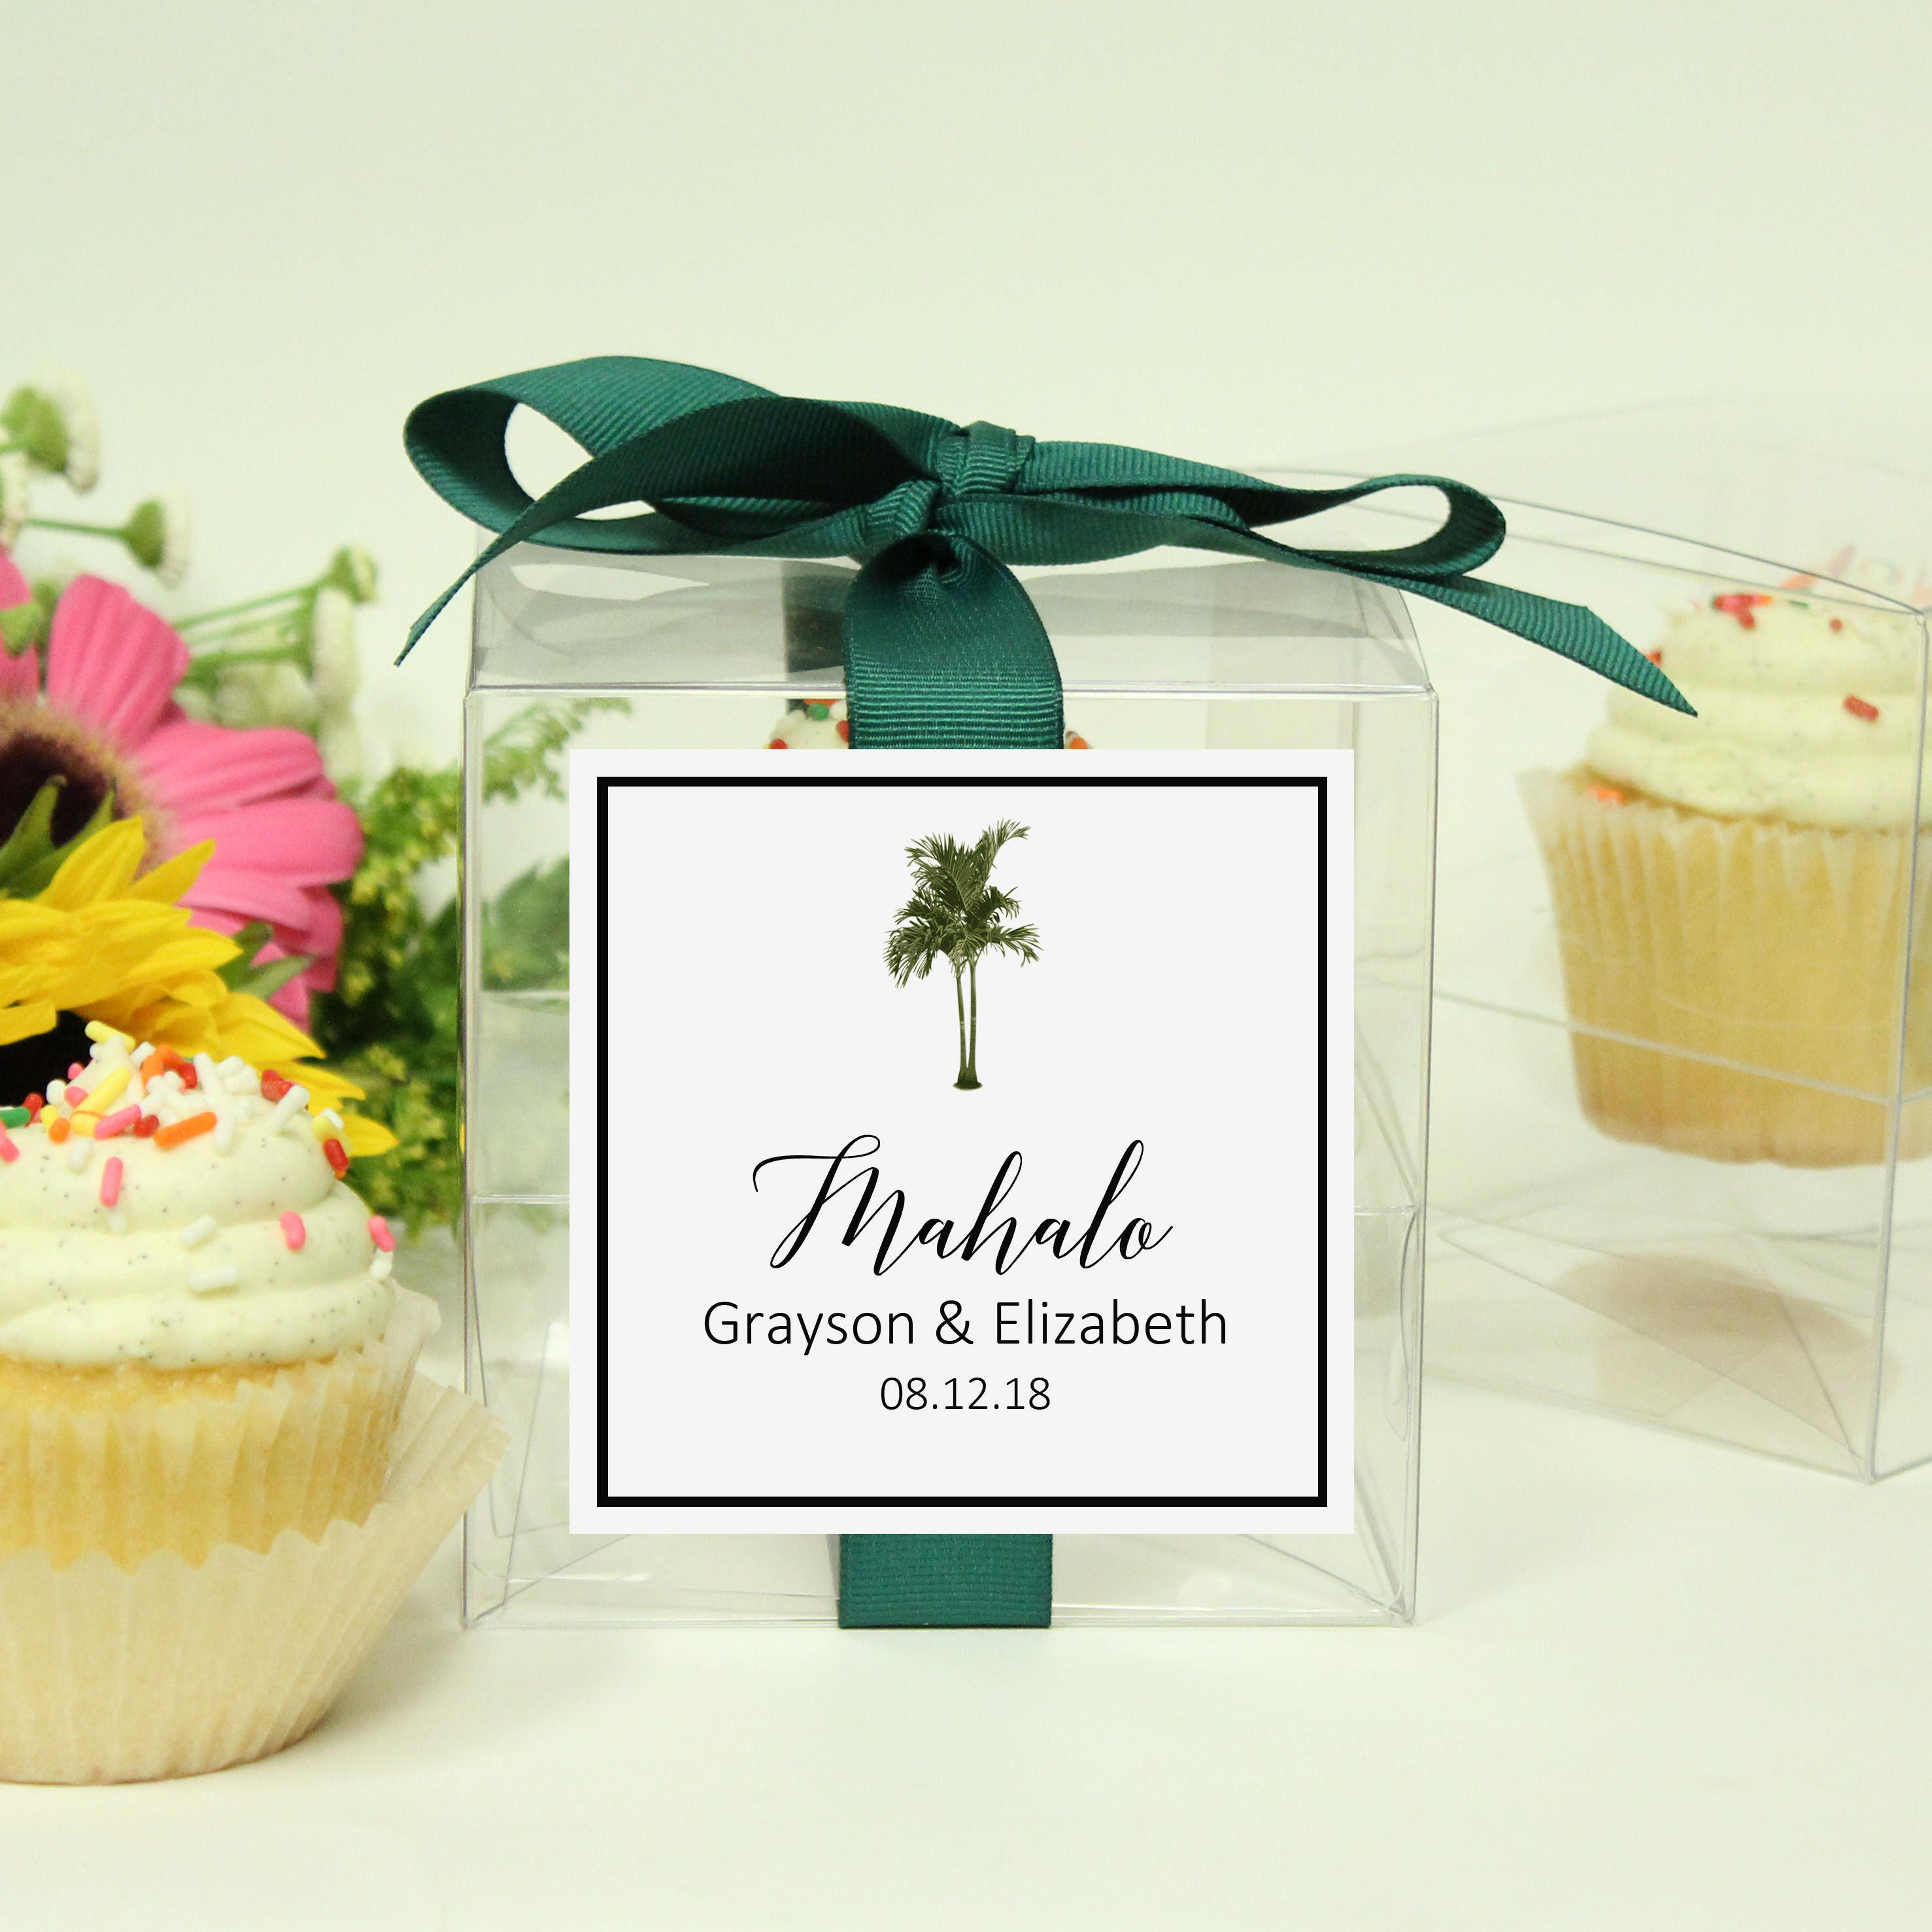 8 Vintage Palm Tree Cupcake Boxes Tropical Wedding Favor